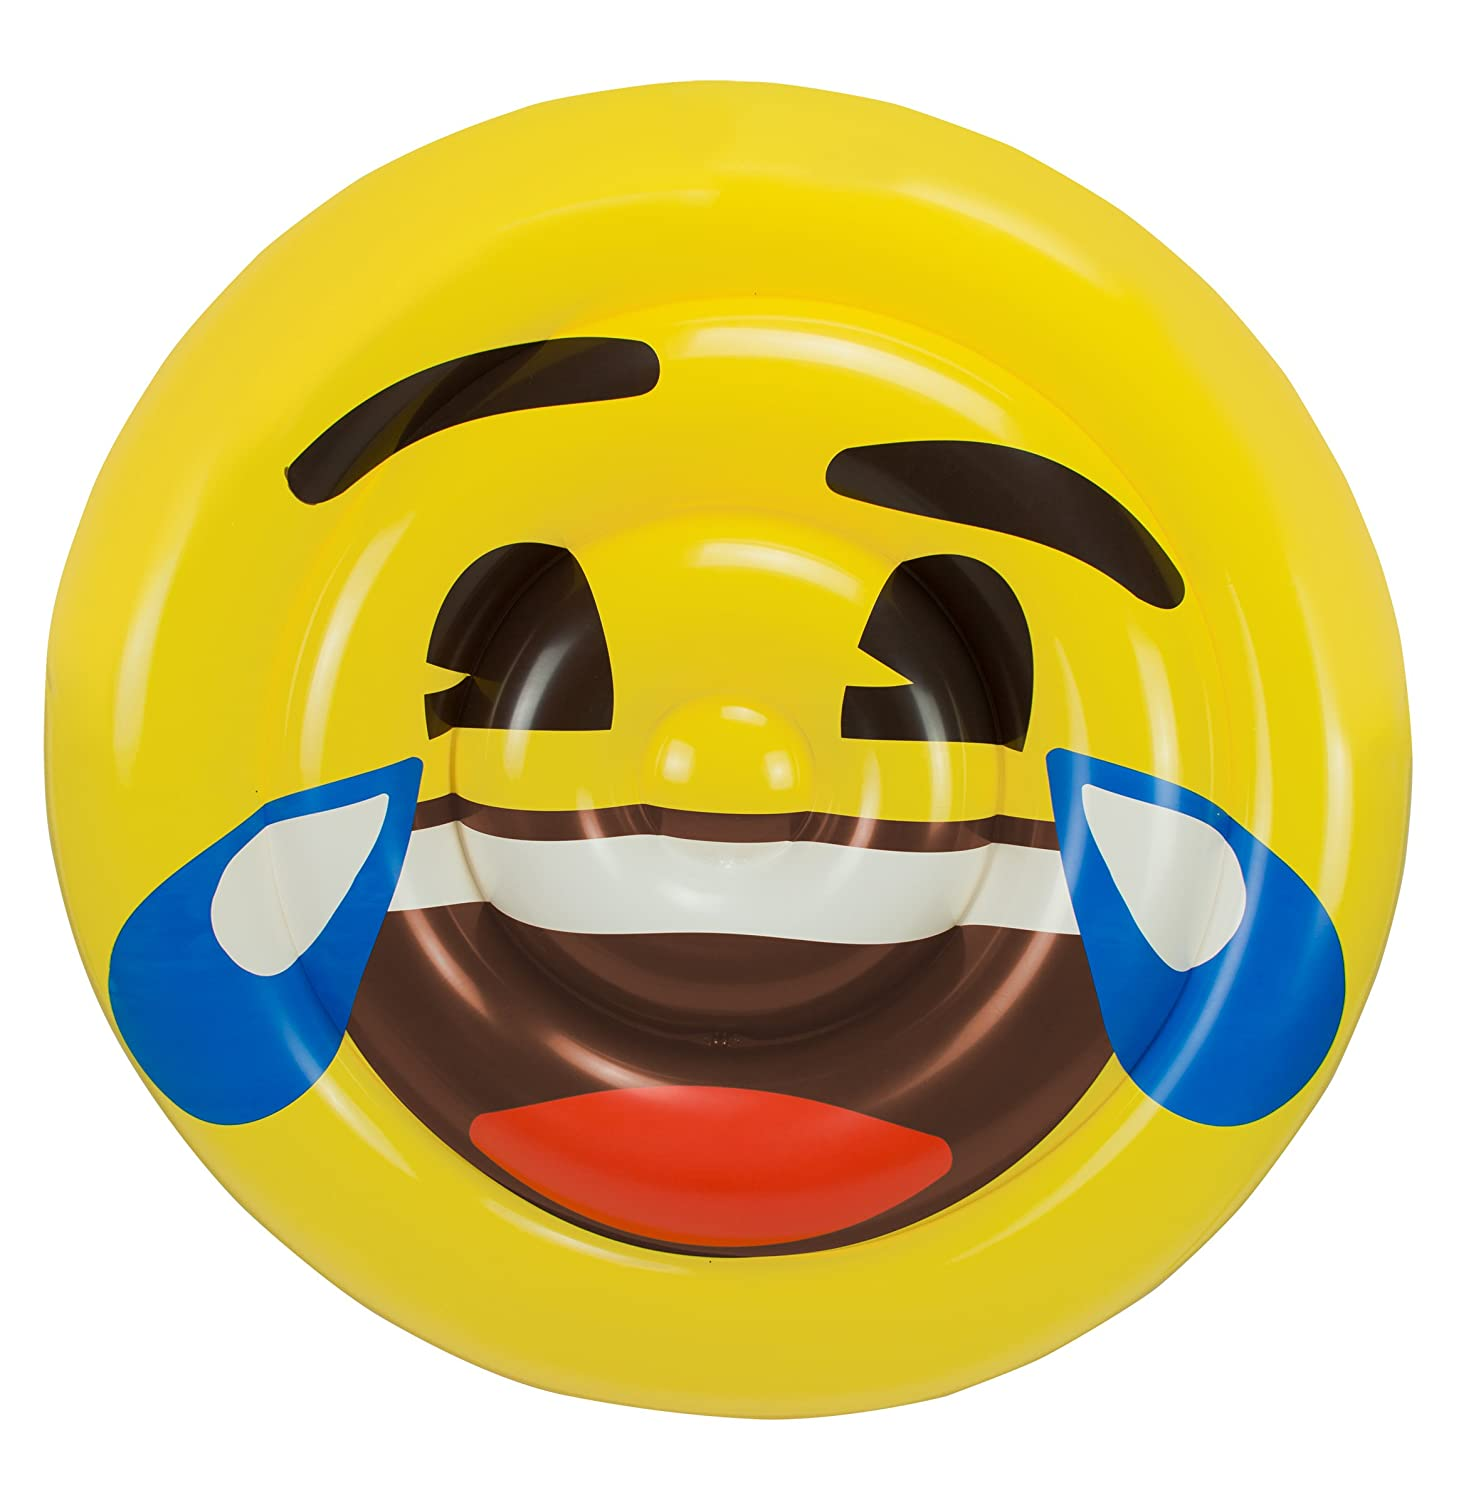 Amazon.com: emoji 5885 Smile Face Bed Float Toy: Toys & Games